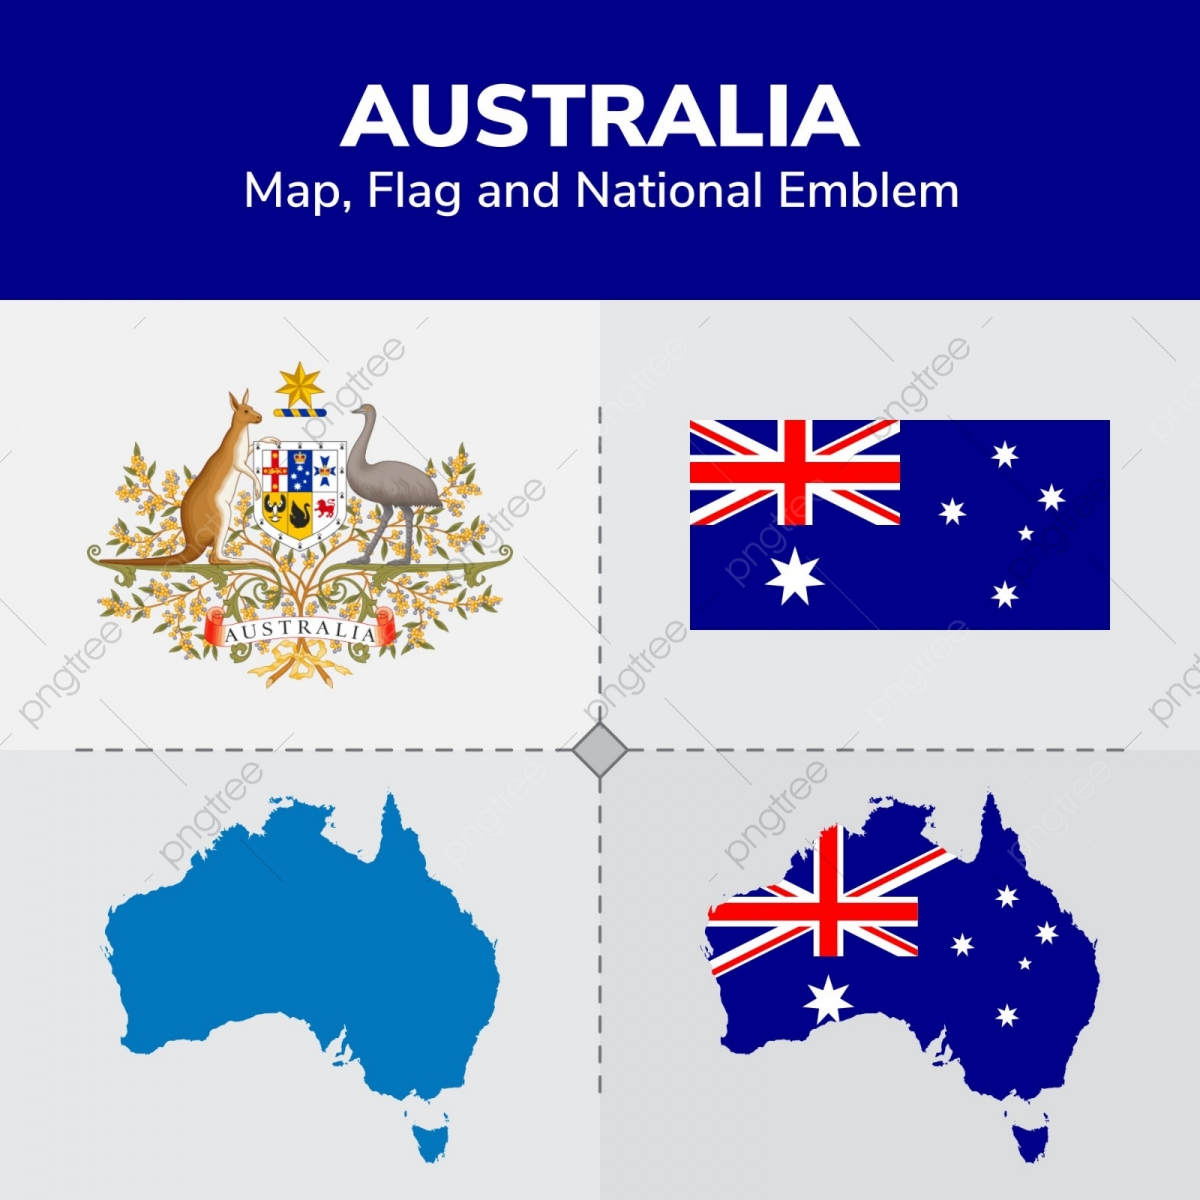 Australia Map With Flag.Australia Map Flag And National Emblem Continents Countries Map